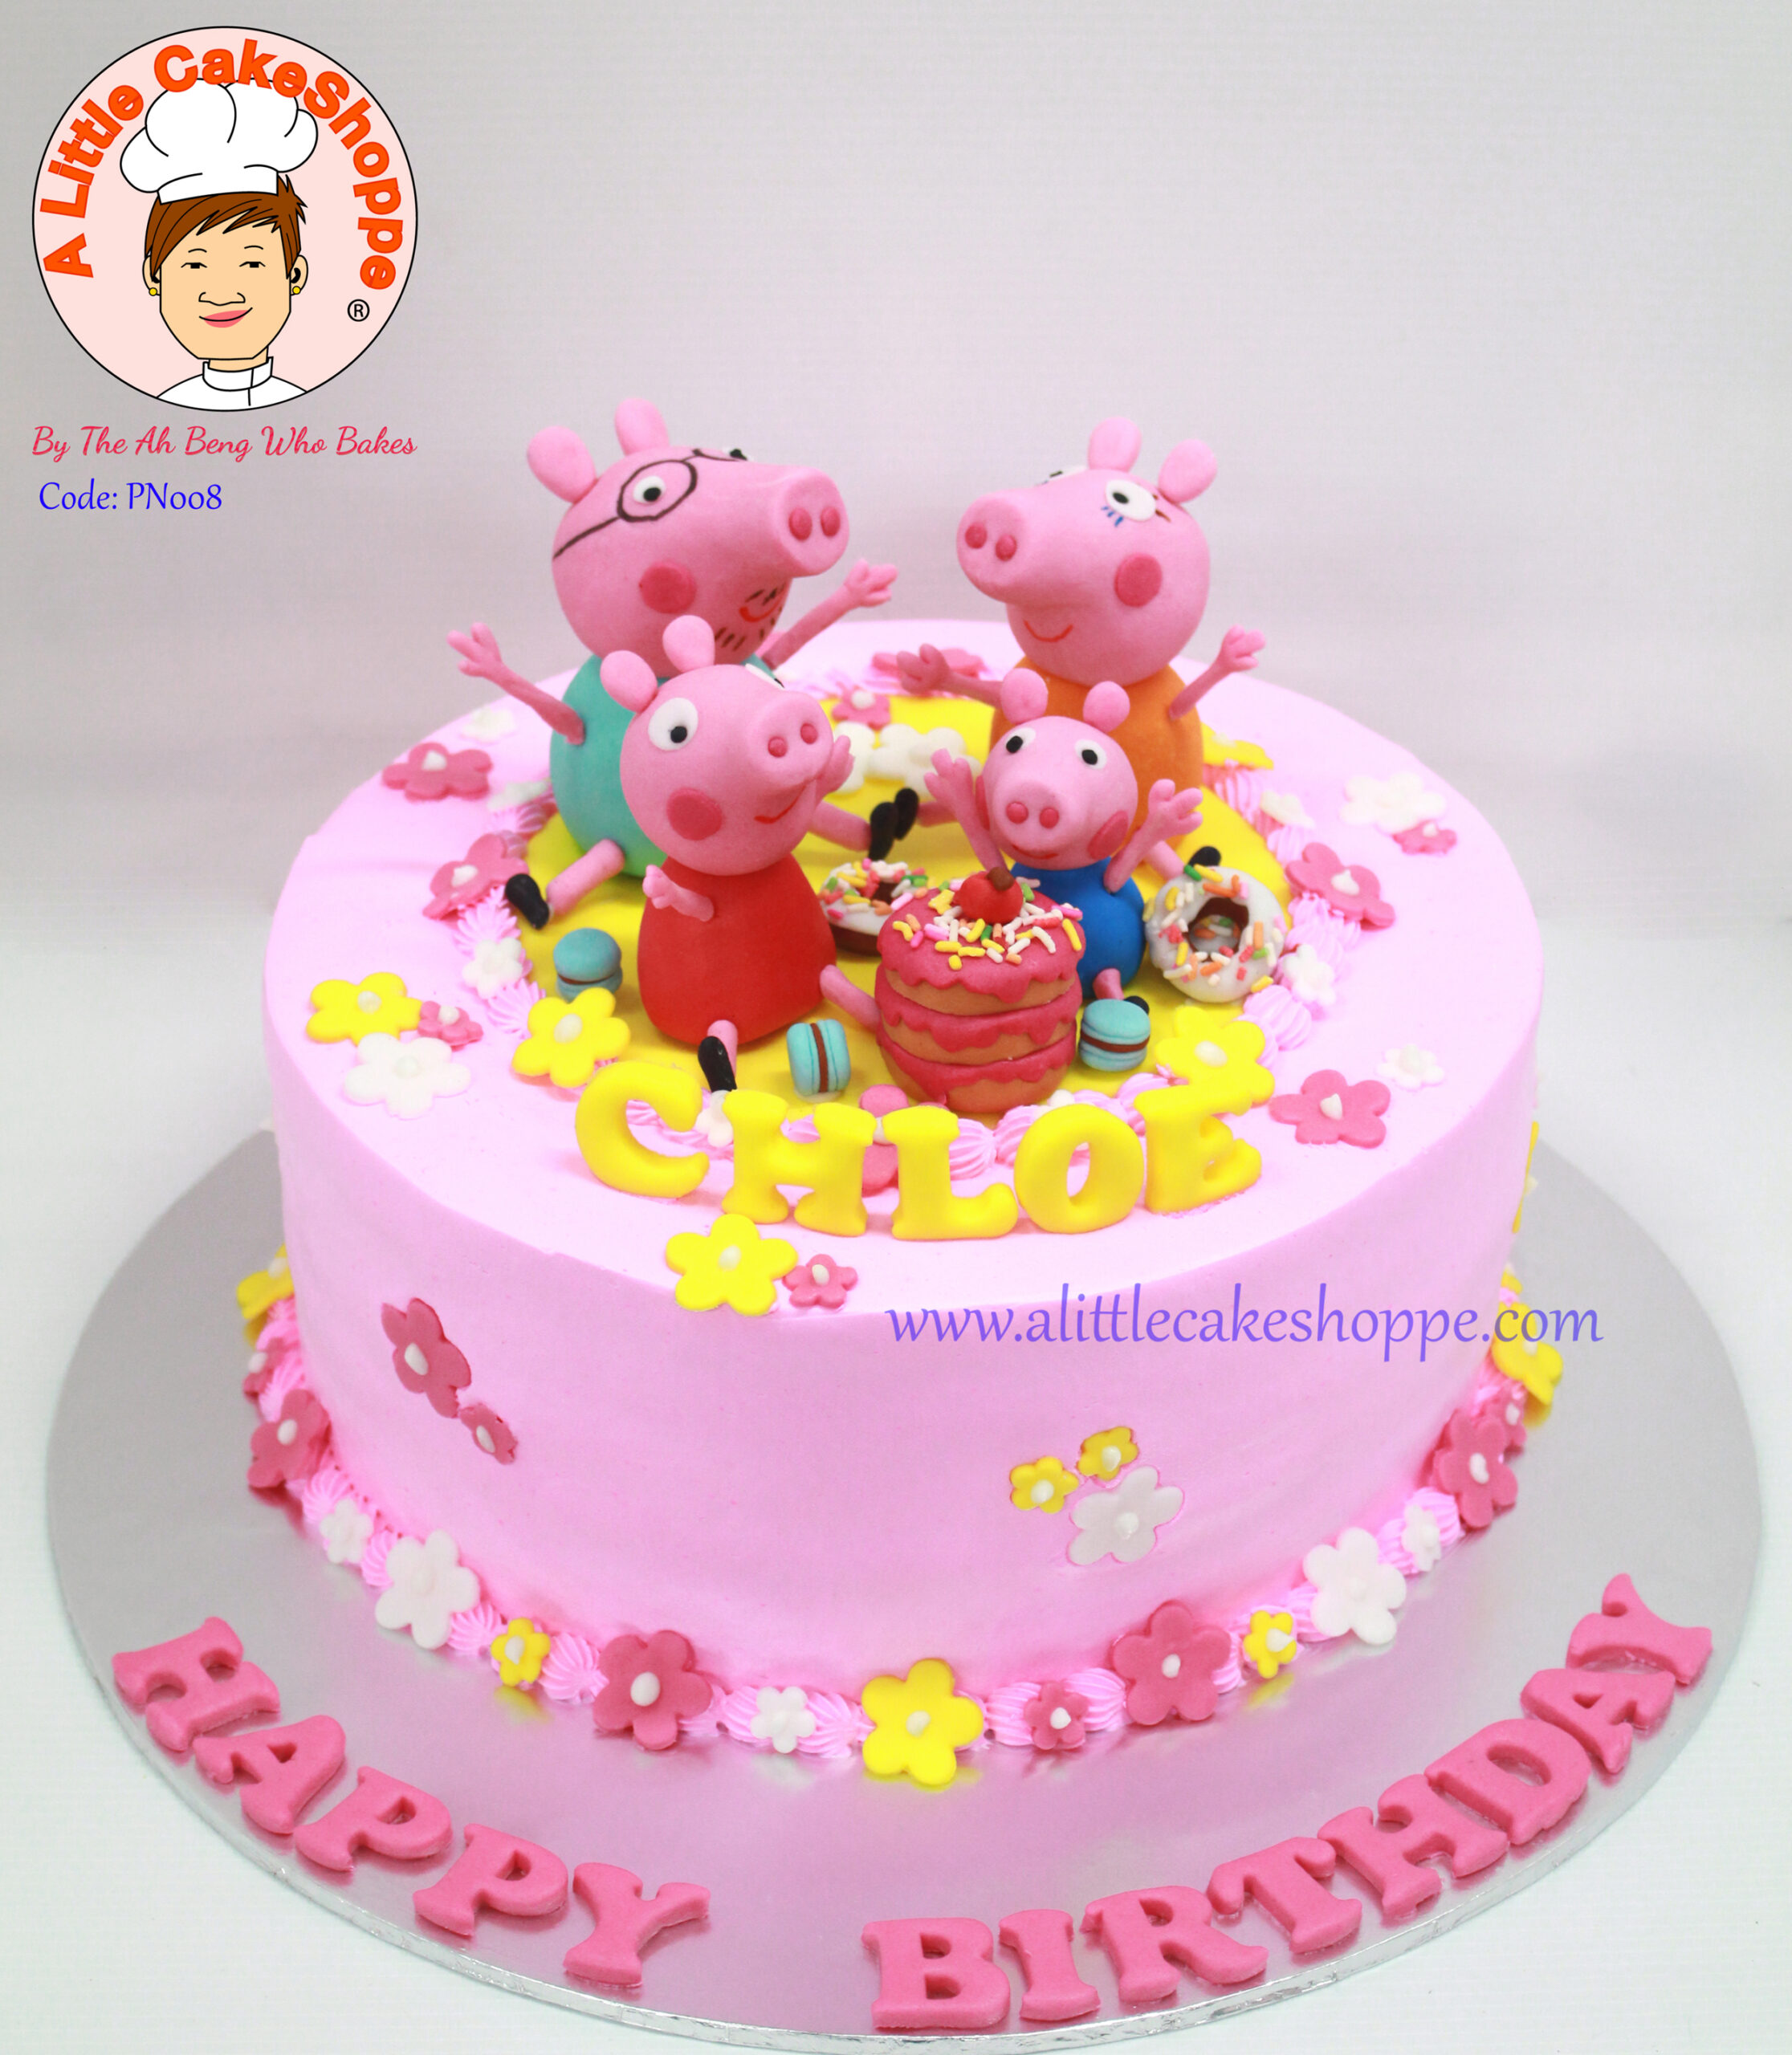 Best Customised Cake Shop Singapore custom cake 2D 3D birthday cake cupcakes desserts wedding corporate events anniversary 1st birthday 21st birthday fondant fresh cream buttercream cakes alittlecakeshoppe a little cake shoppe compliments review singapore bakers SG cake shop cakeshop ah beng who bakes peppa pig